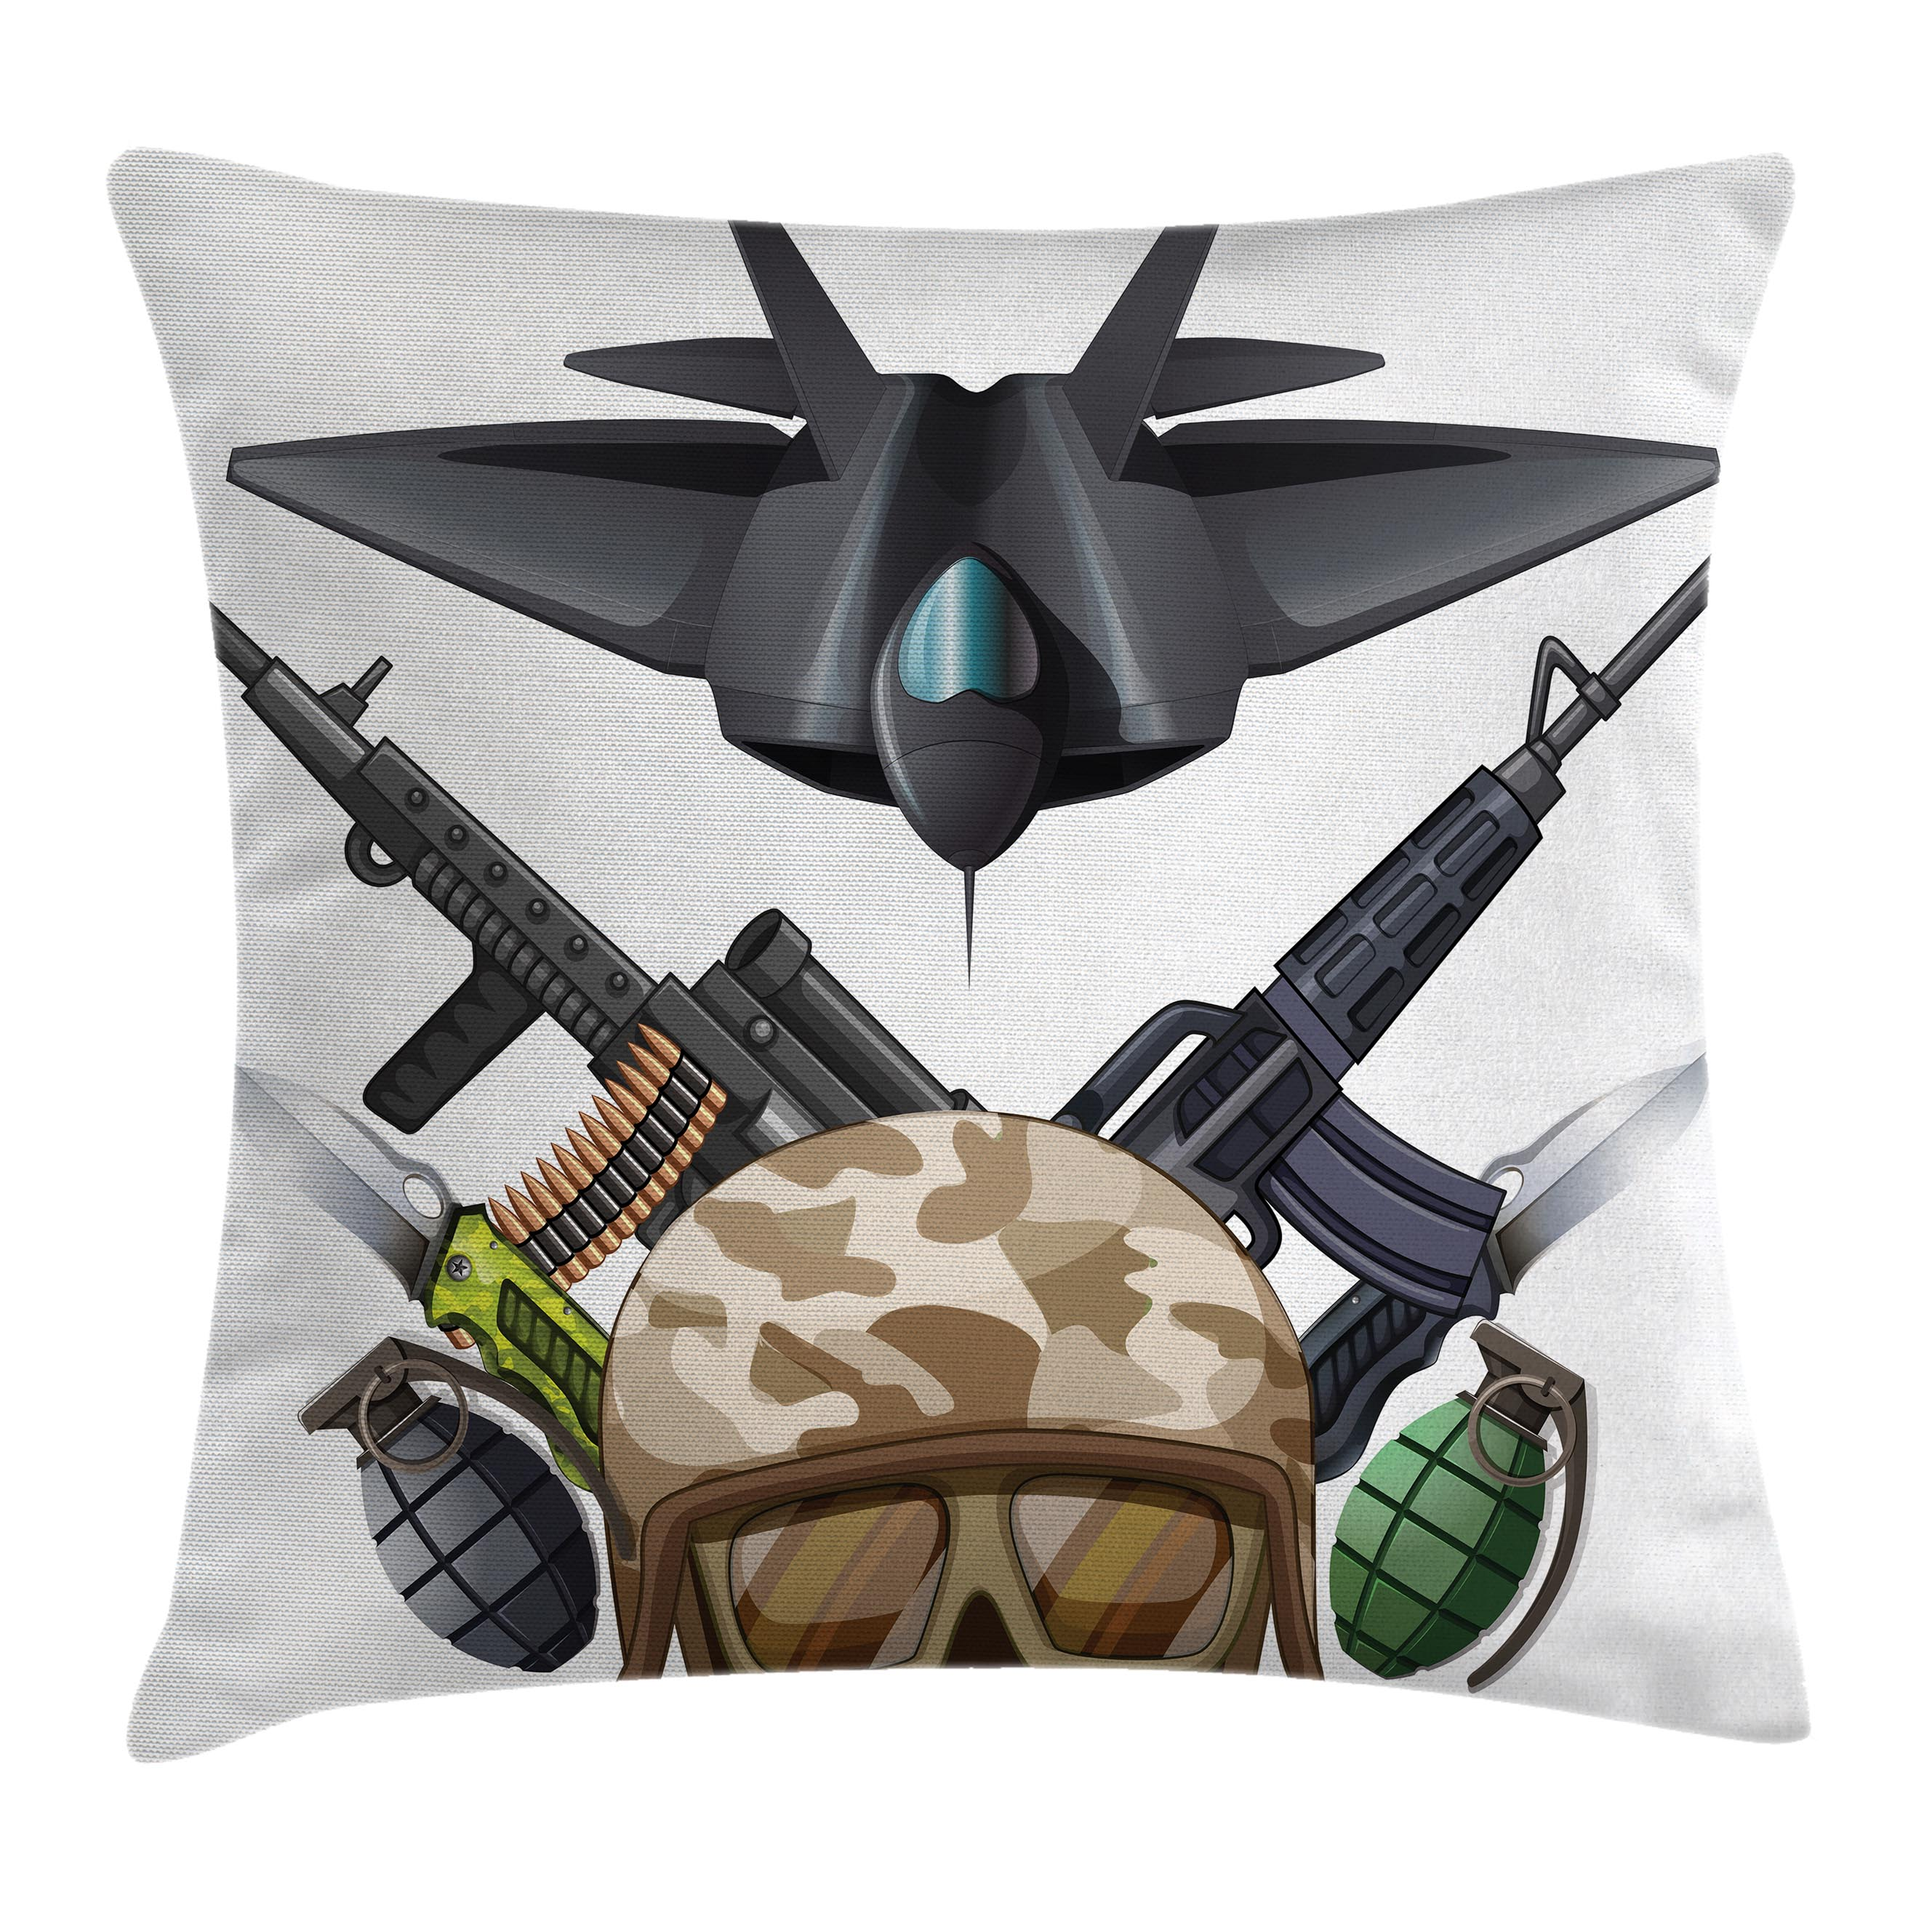 War Home Decor Throw Pillow Cushion Cover, Weapons and Jet Figure Helmet Rifles Knifes Bombs Bullets Ammunition Print, Decorative Square Accent Pillow Case, 16 X 16 Inches, Black Green, by Ambesonne